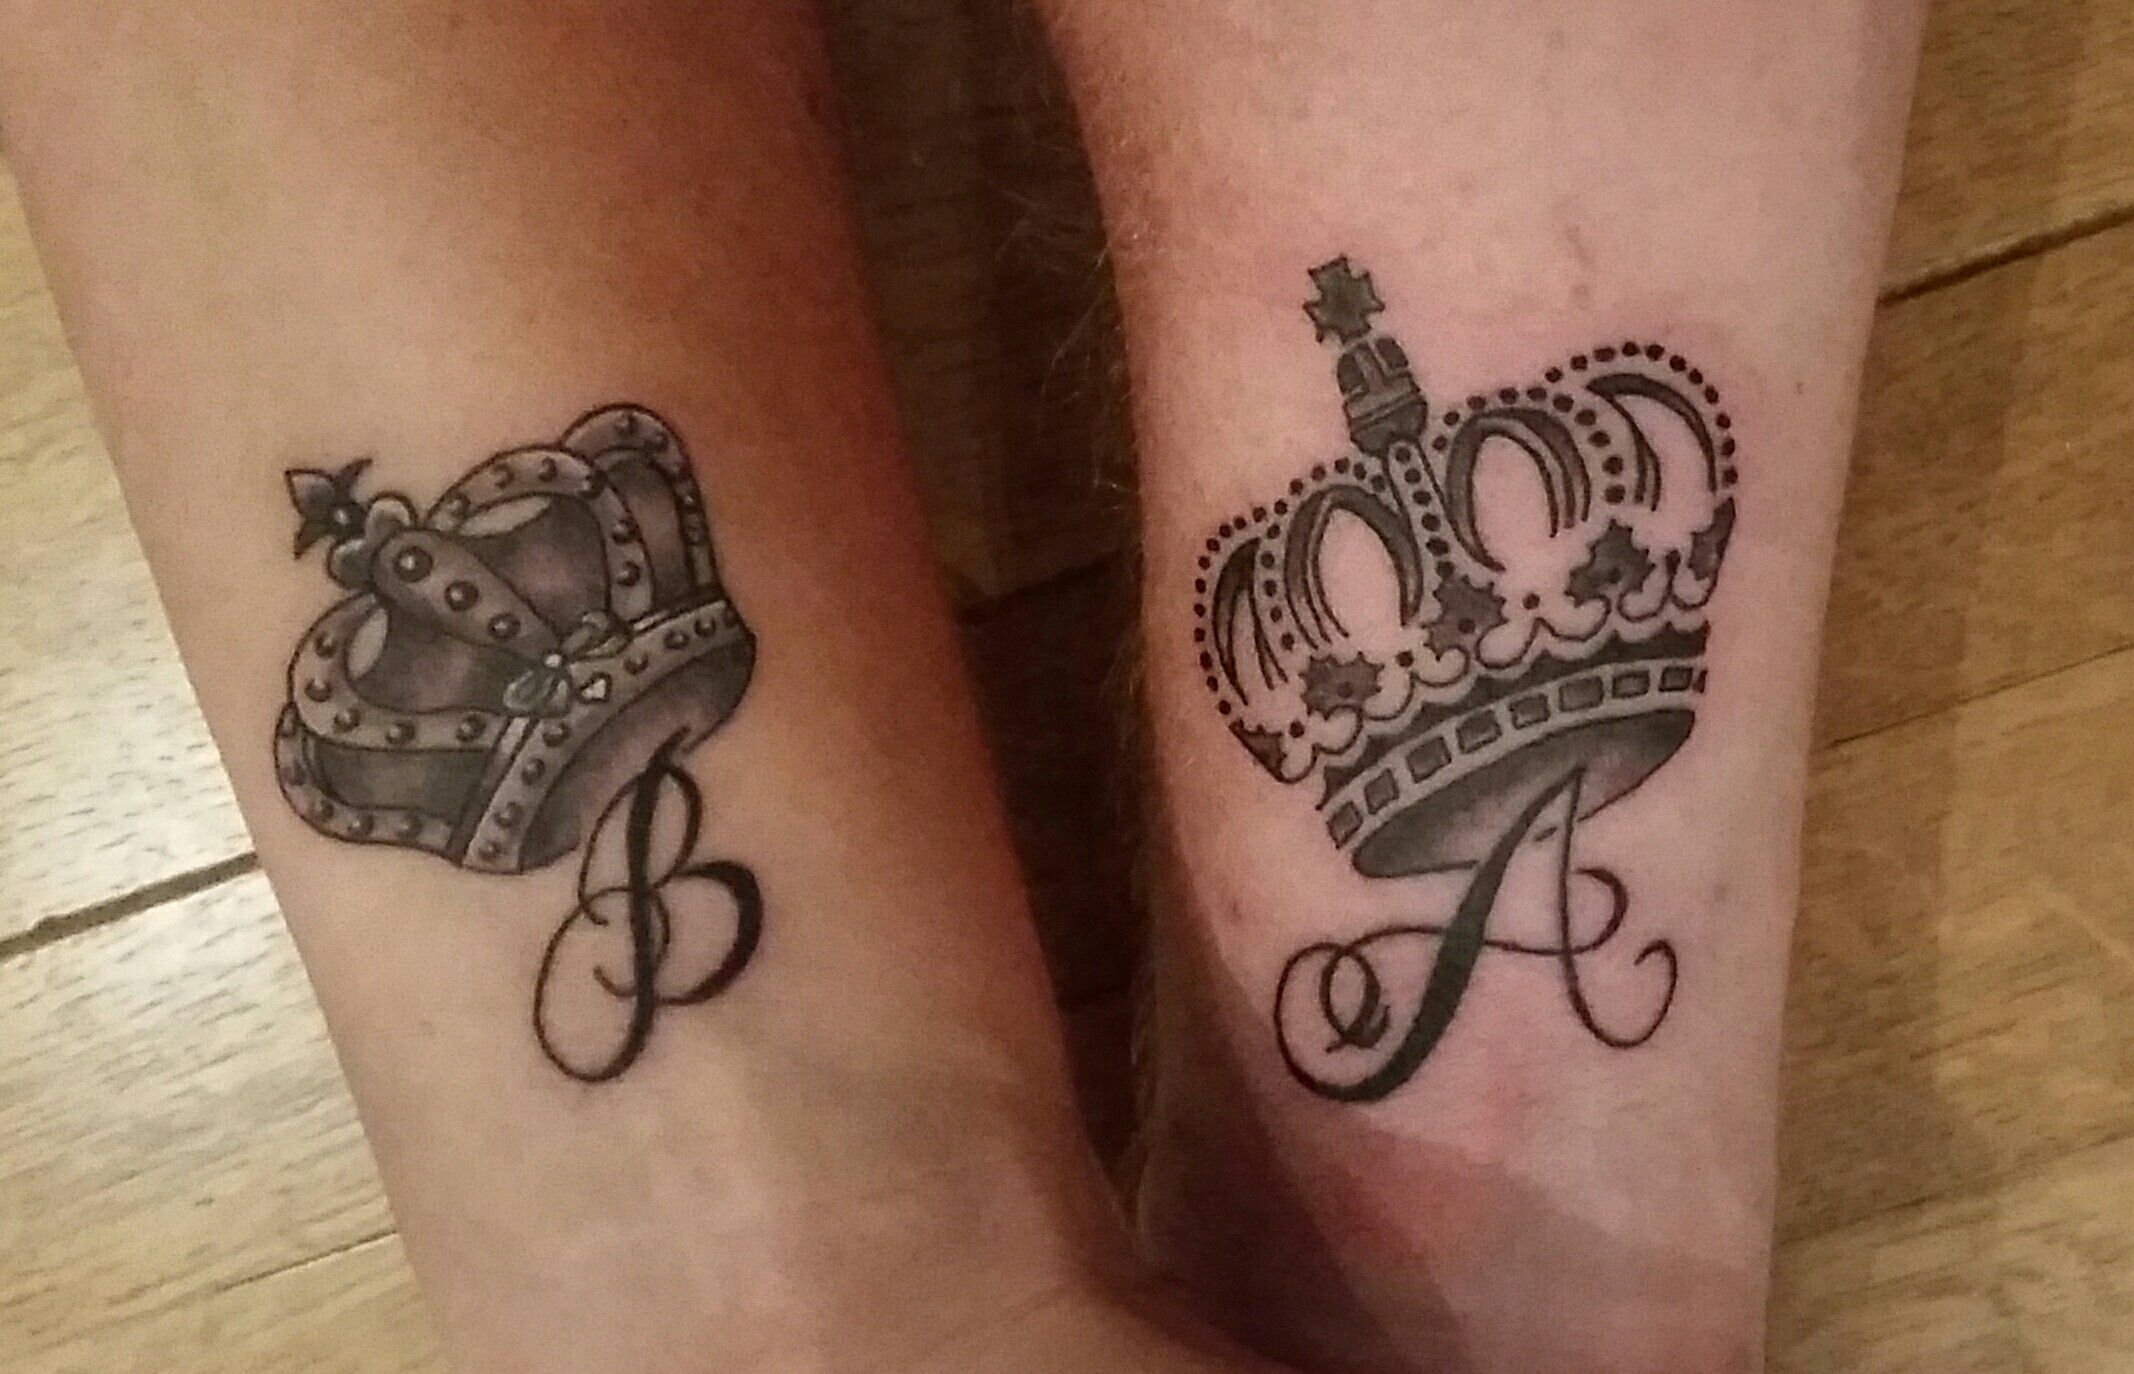 Queen King Tattoo With Our Initials King Tattoos Matching Couple Tattoos Matching Tattoos King queen tattoo hd images